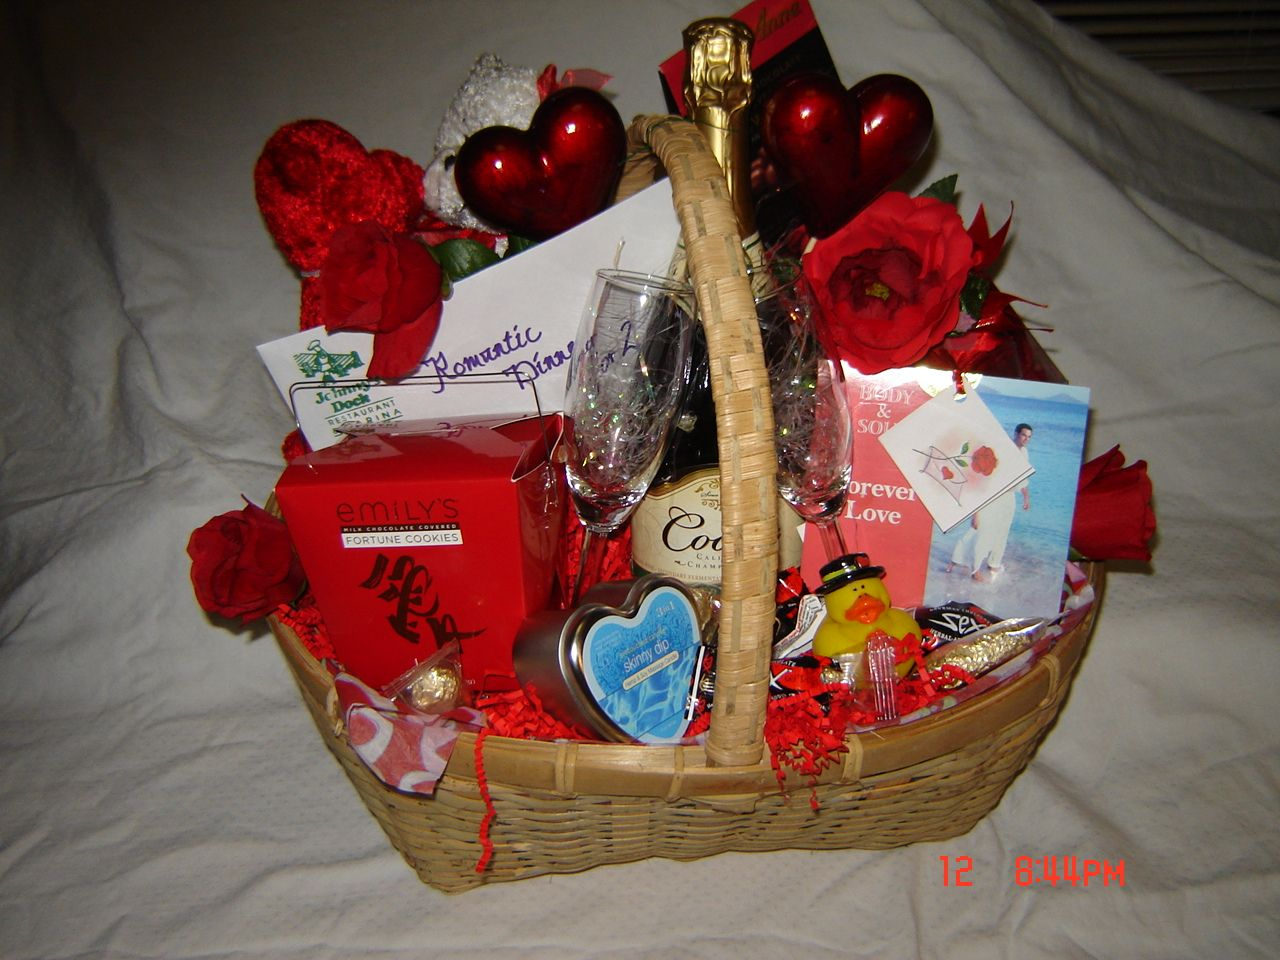 Christmas gift basket ideas under $20